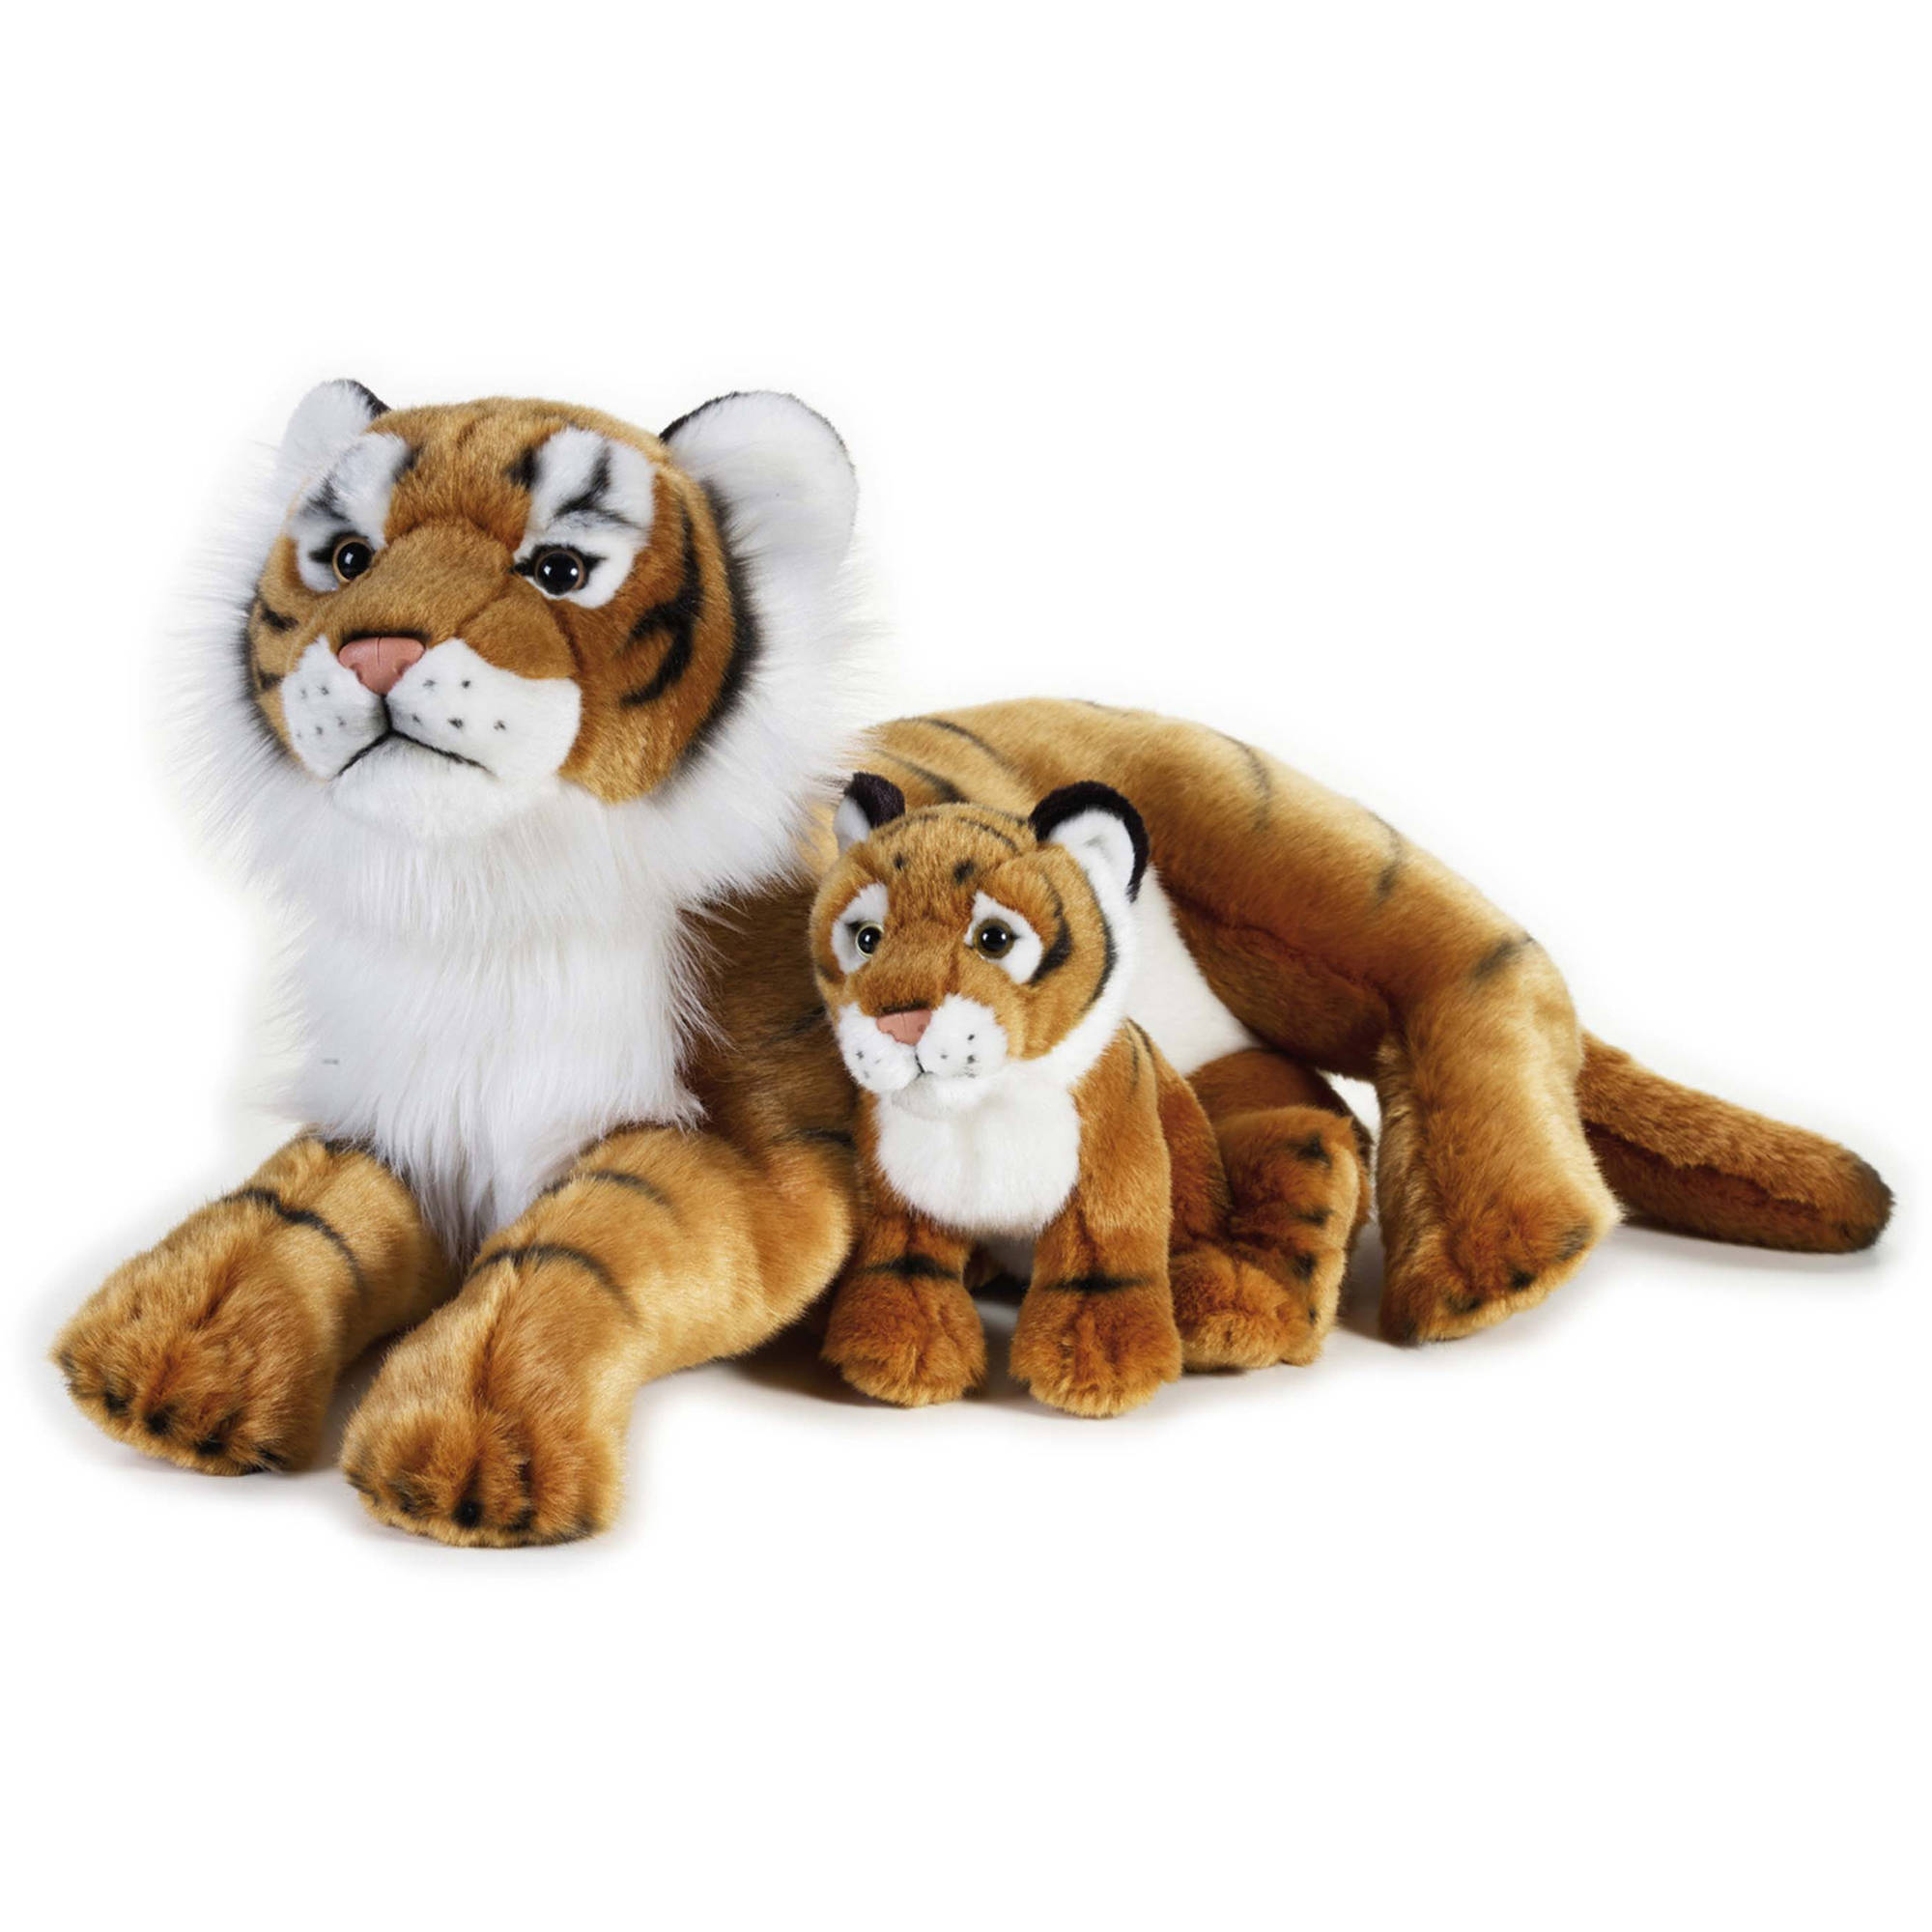 Lelly National Geographic Plush, Tiger with Baby by Venturelli